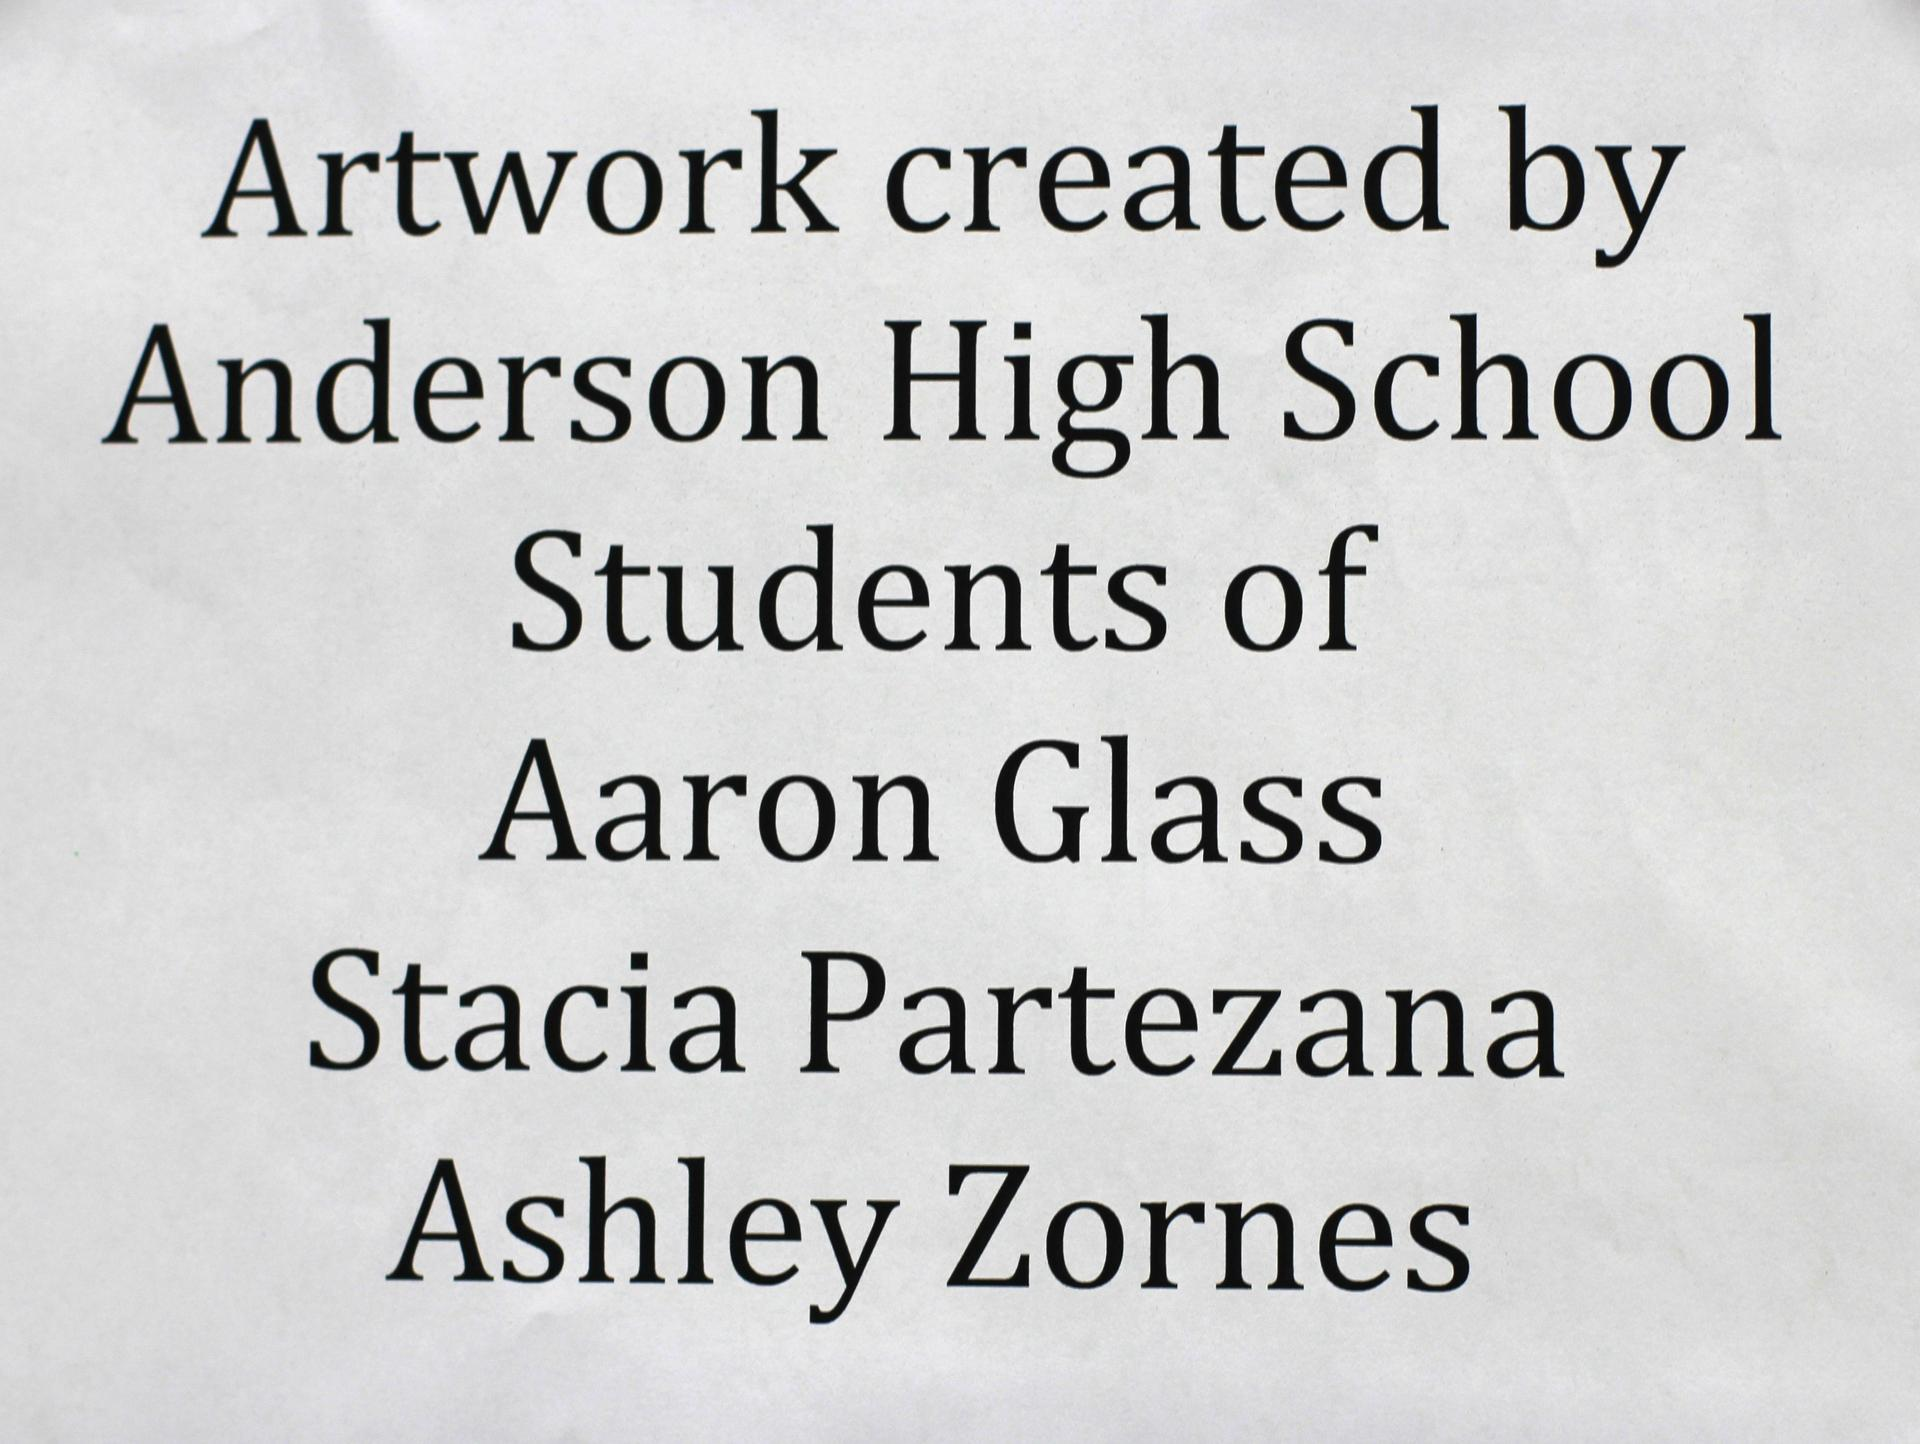 AHS Art sign that artwork is from AHS Art students